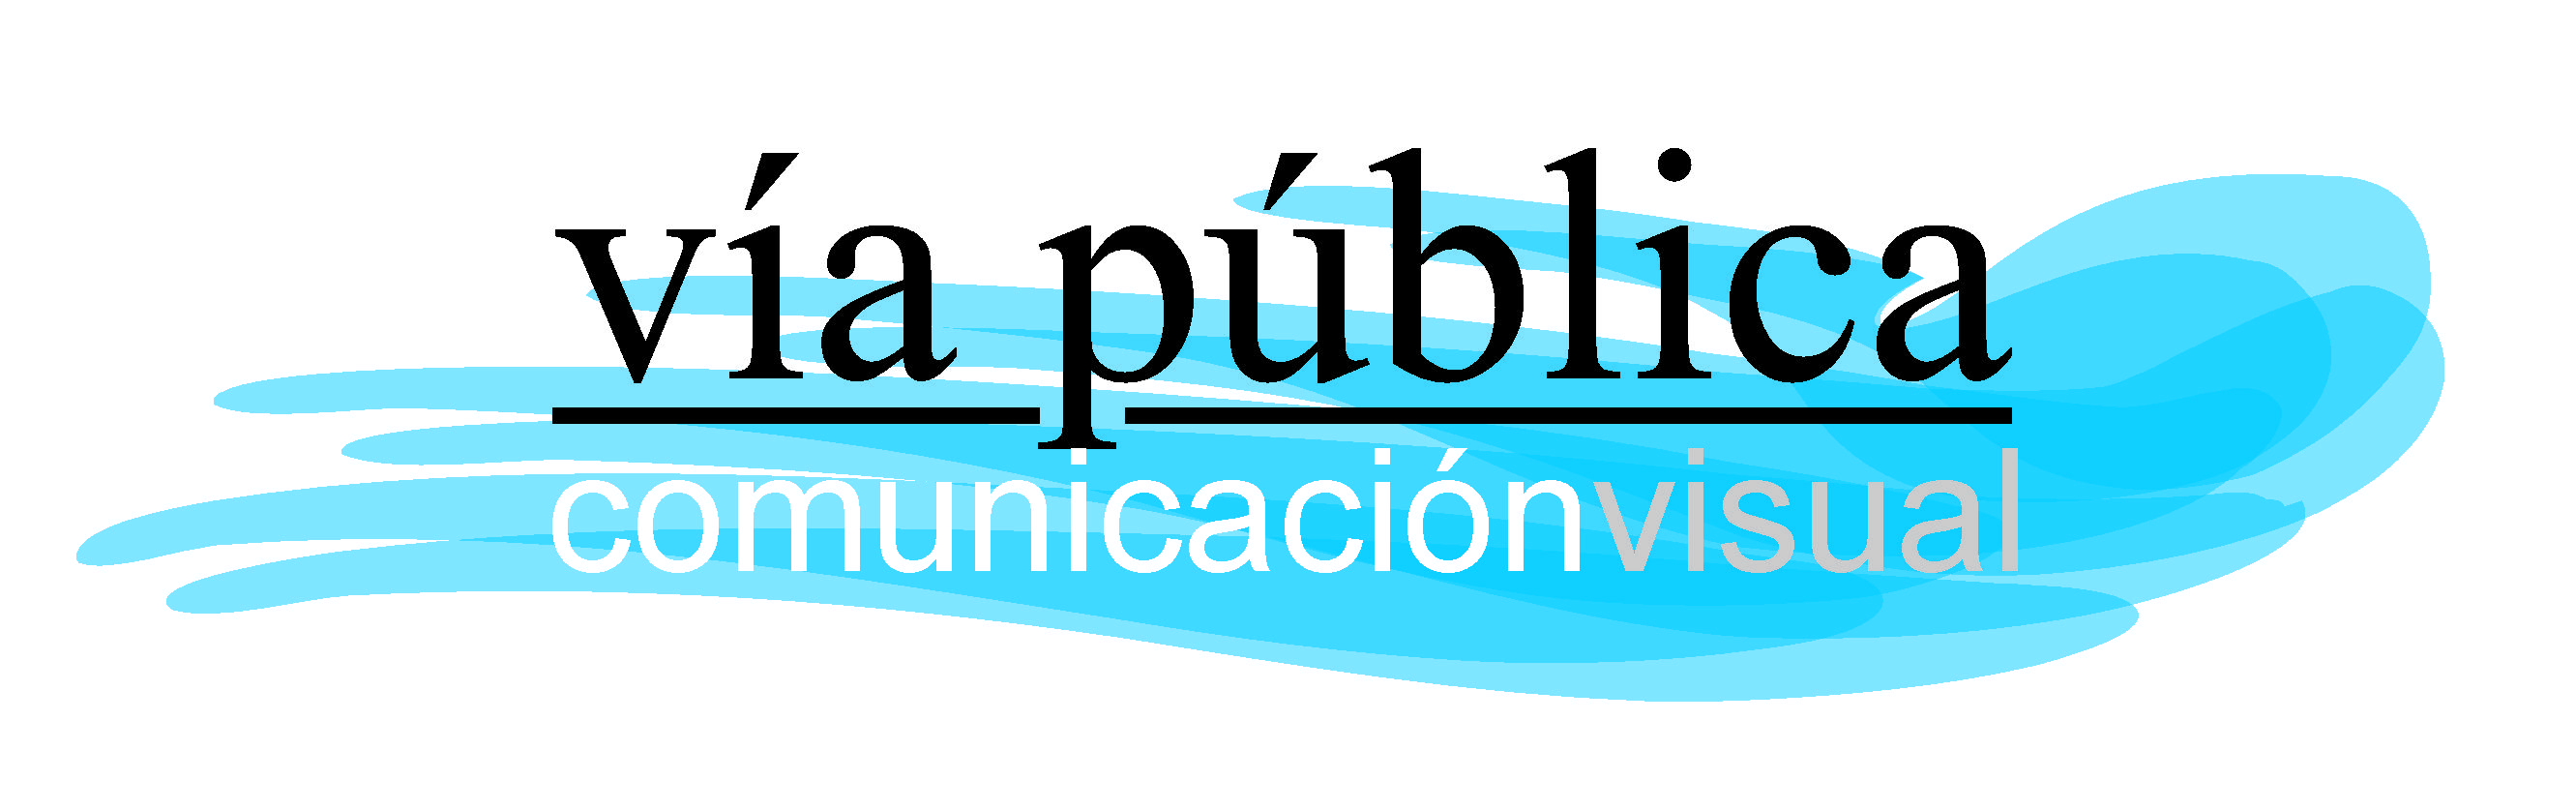 via publica comunicacion visual